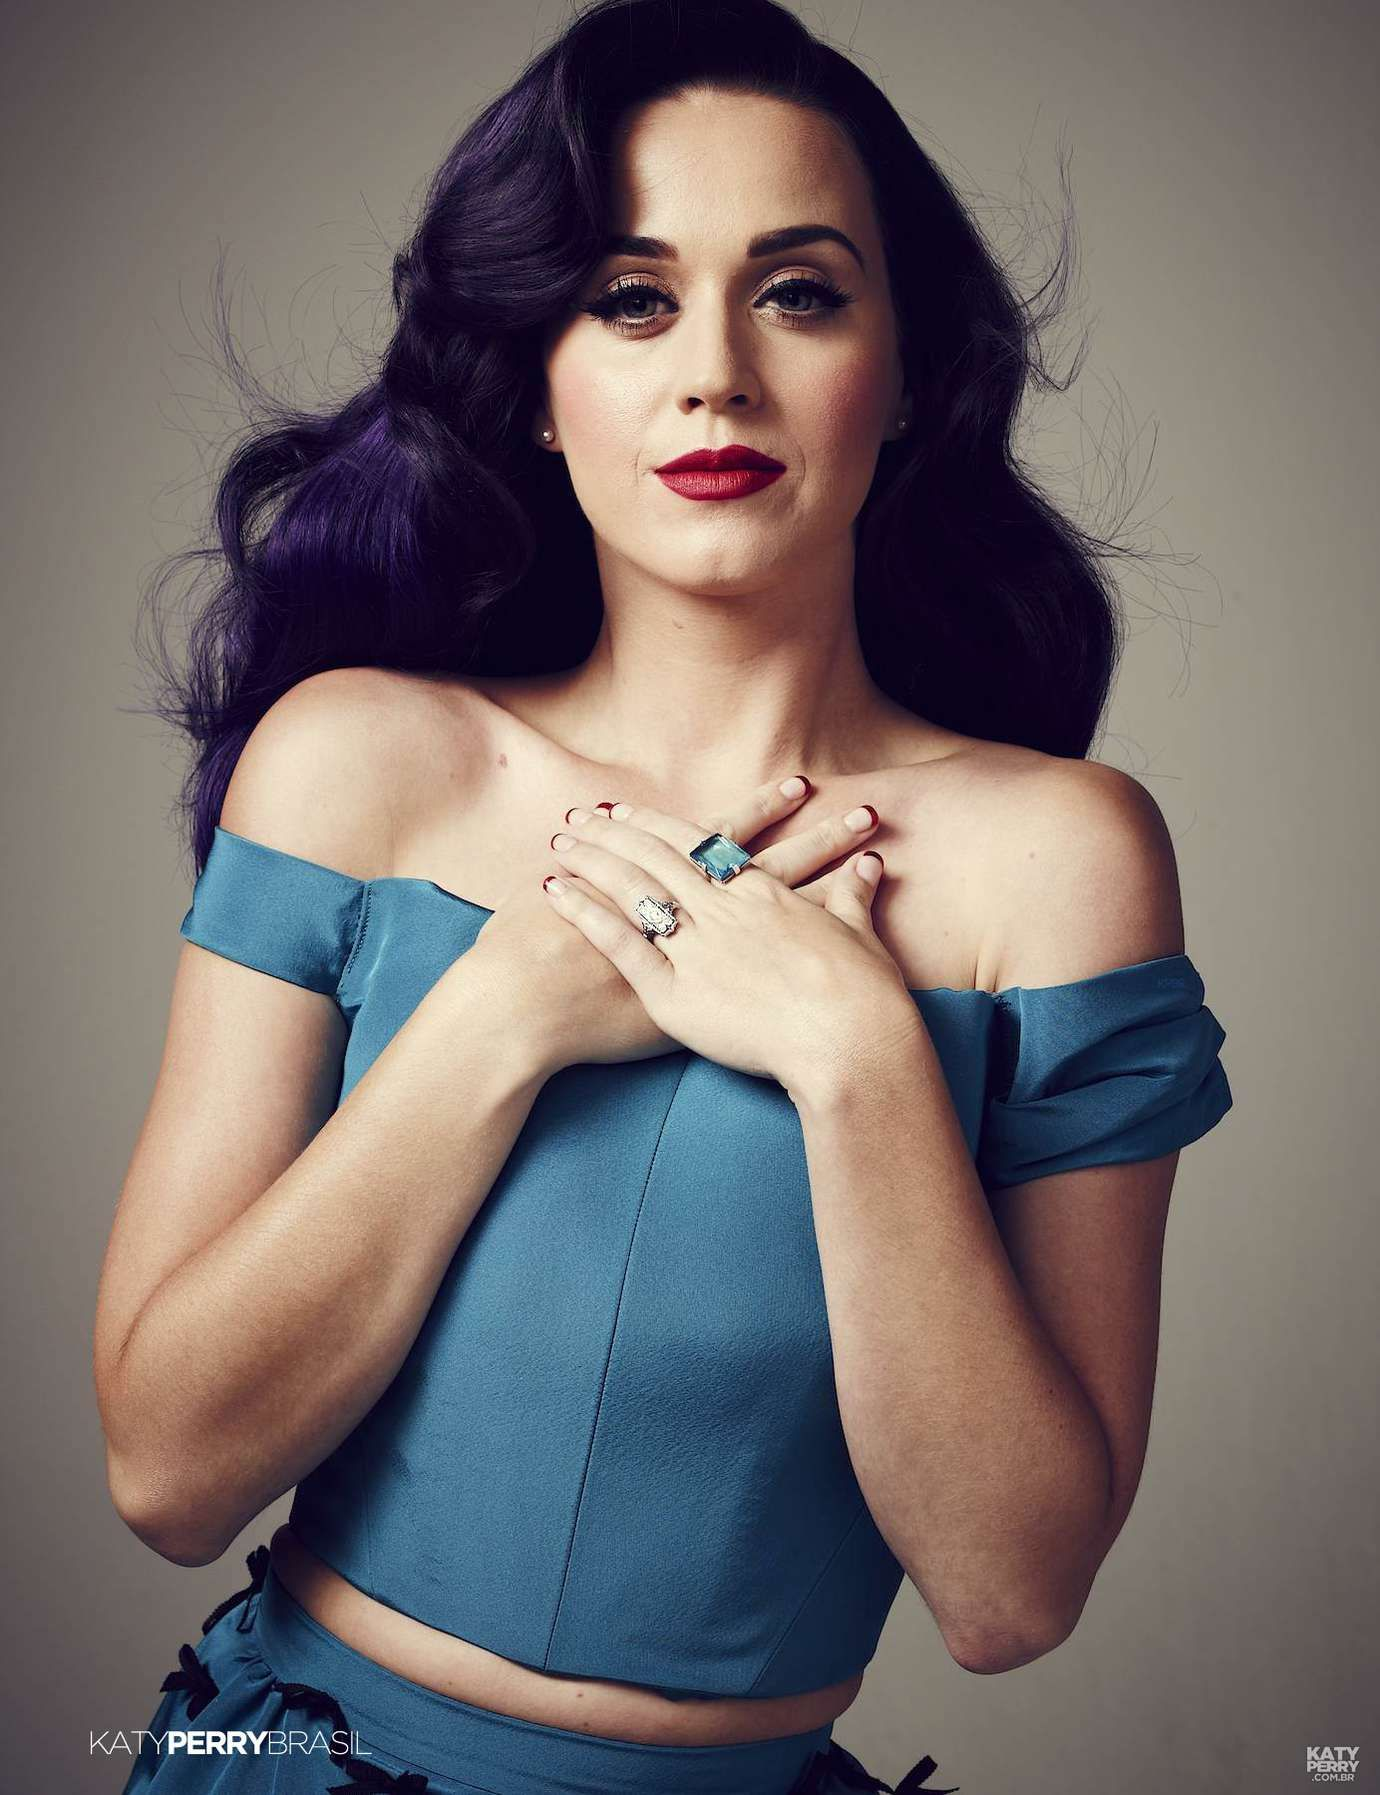 Perry Katy photoshoot pictures forecasting to wear in spring in 2019